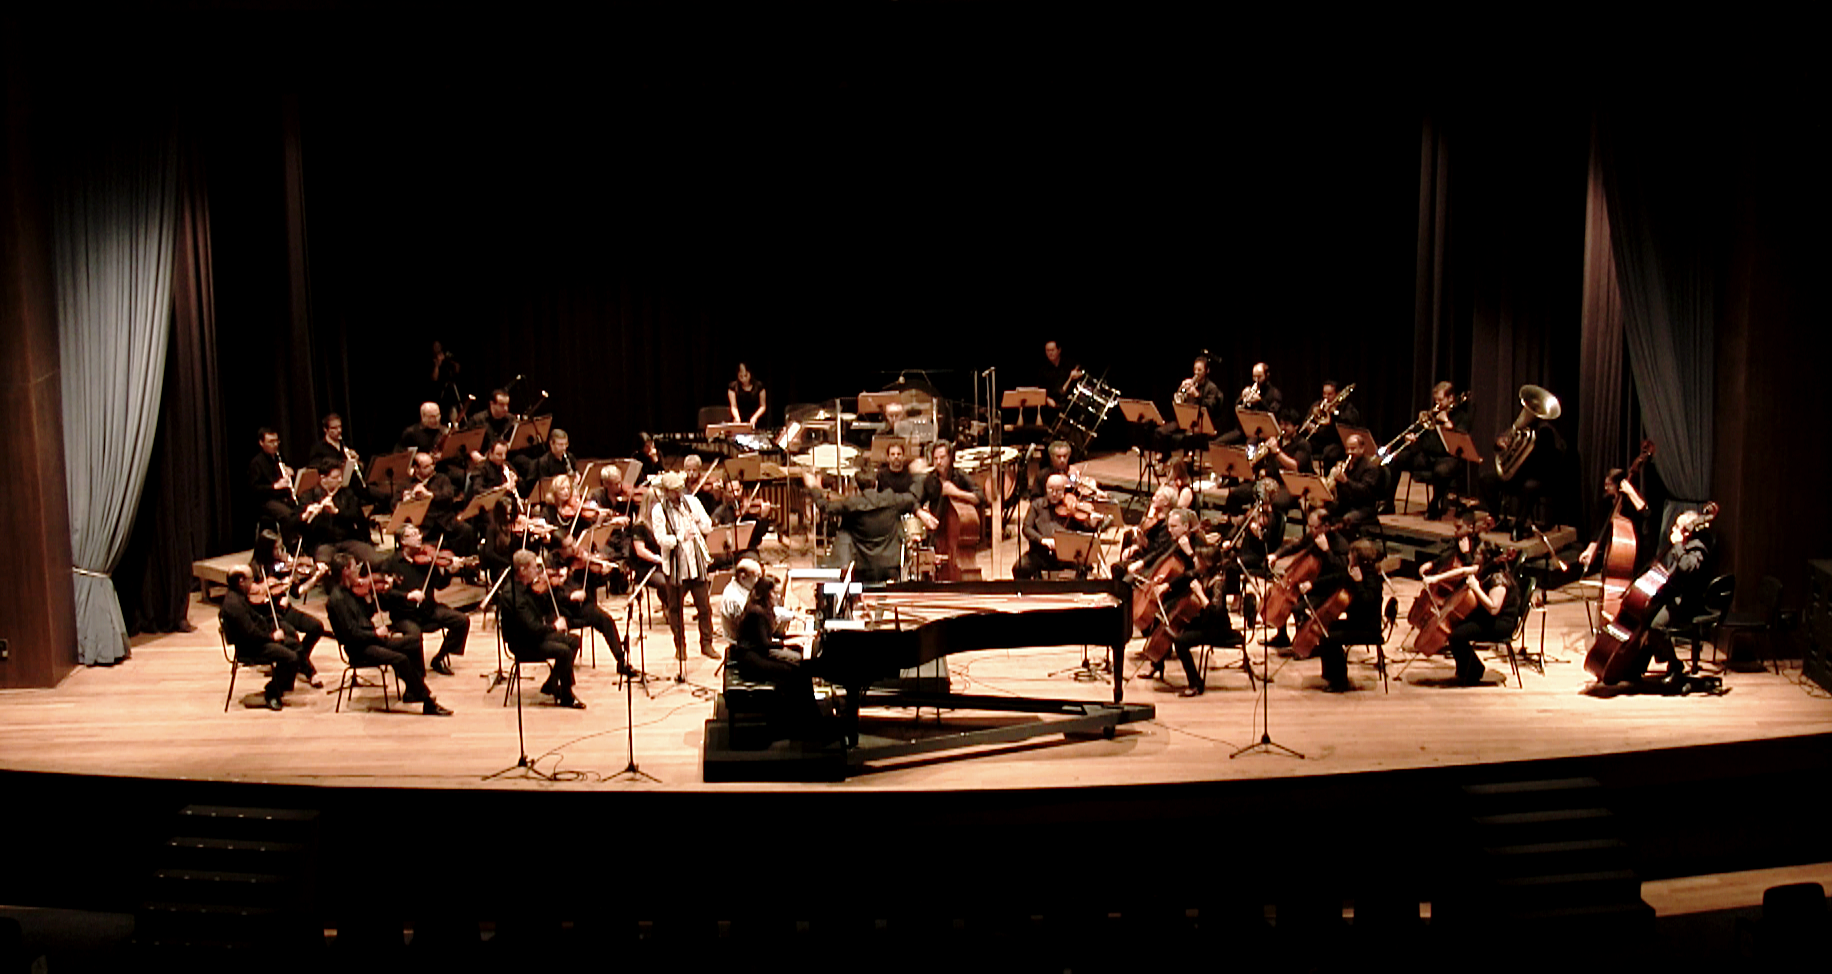 Rafael Piccolotto de Lima conducting UNICAMP Symphony Orchestra in a concert dedicated to his music. Campinas, São Paulo, Brazil.